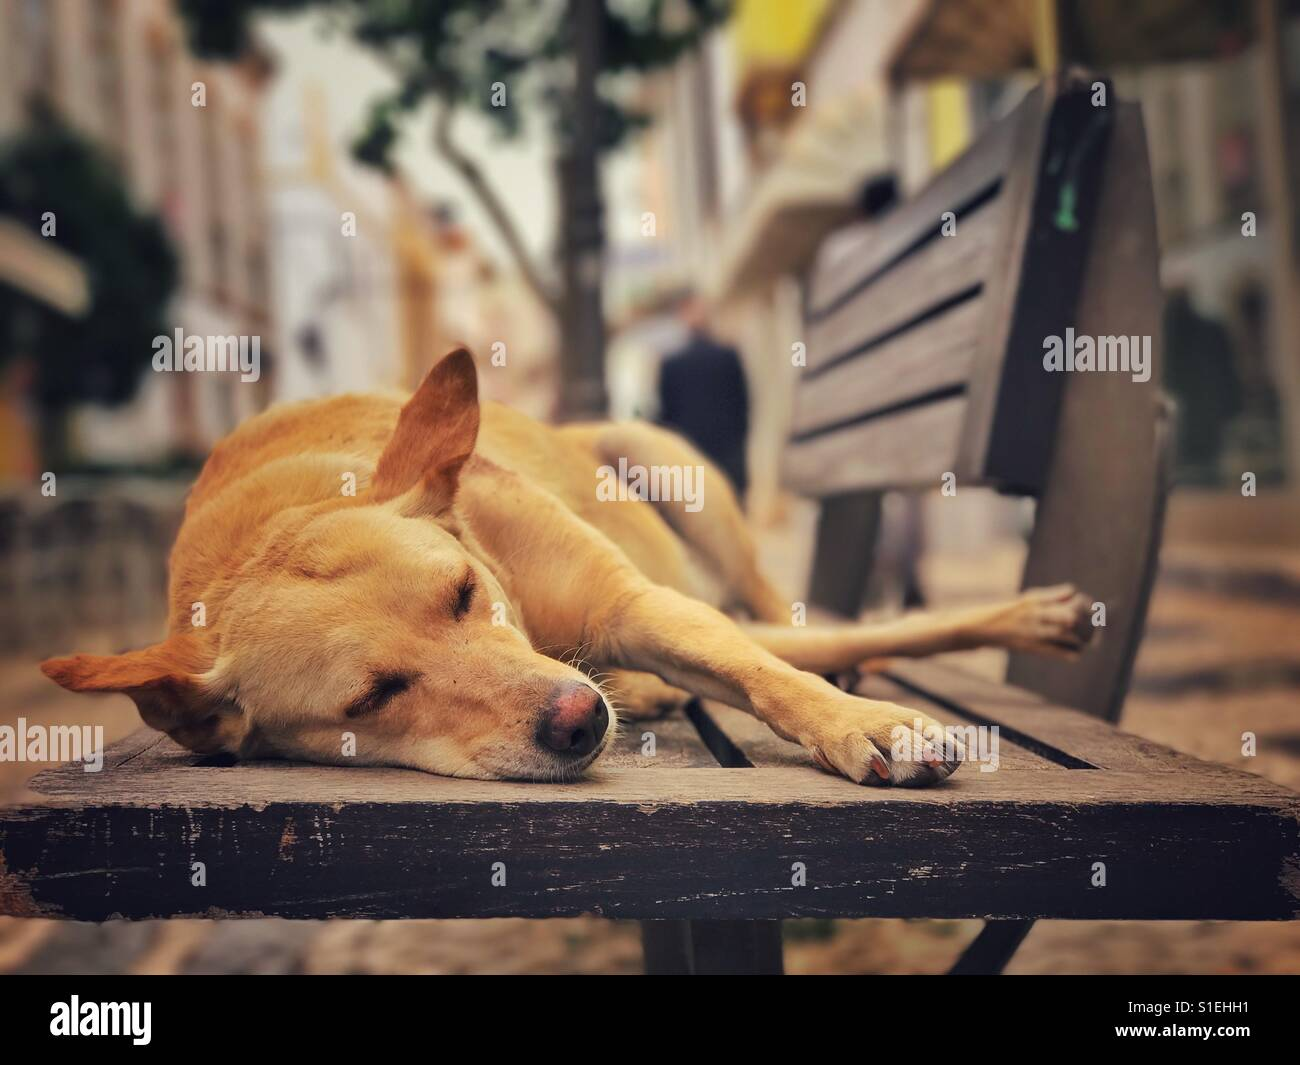 Dog asleep on a town bench - Stock Image